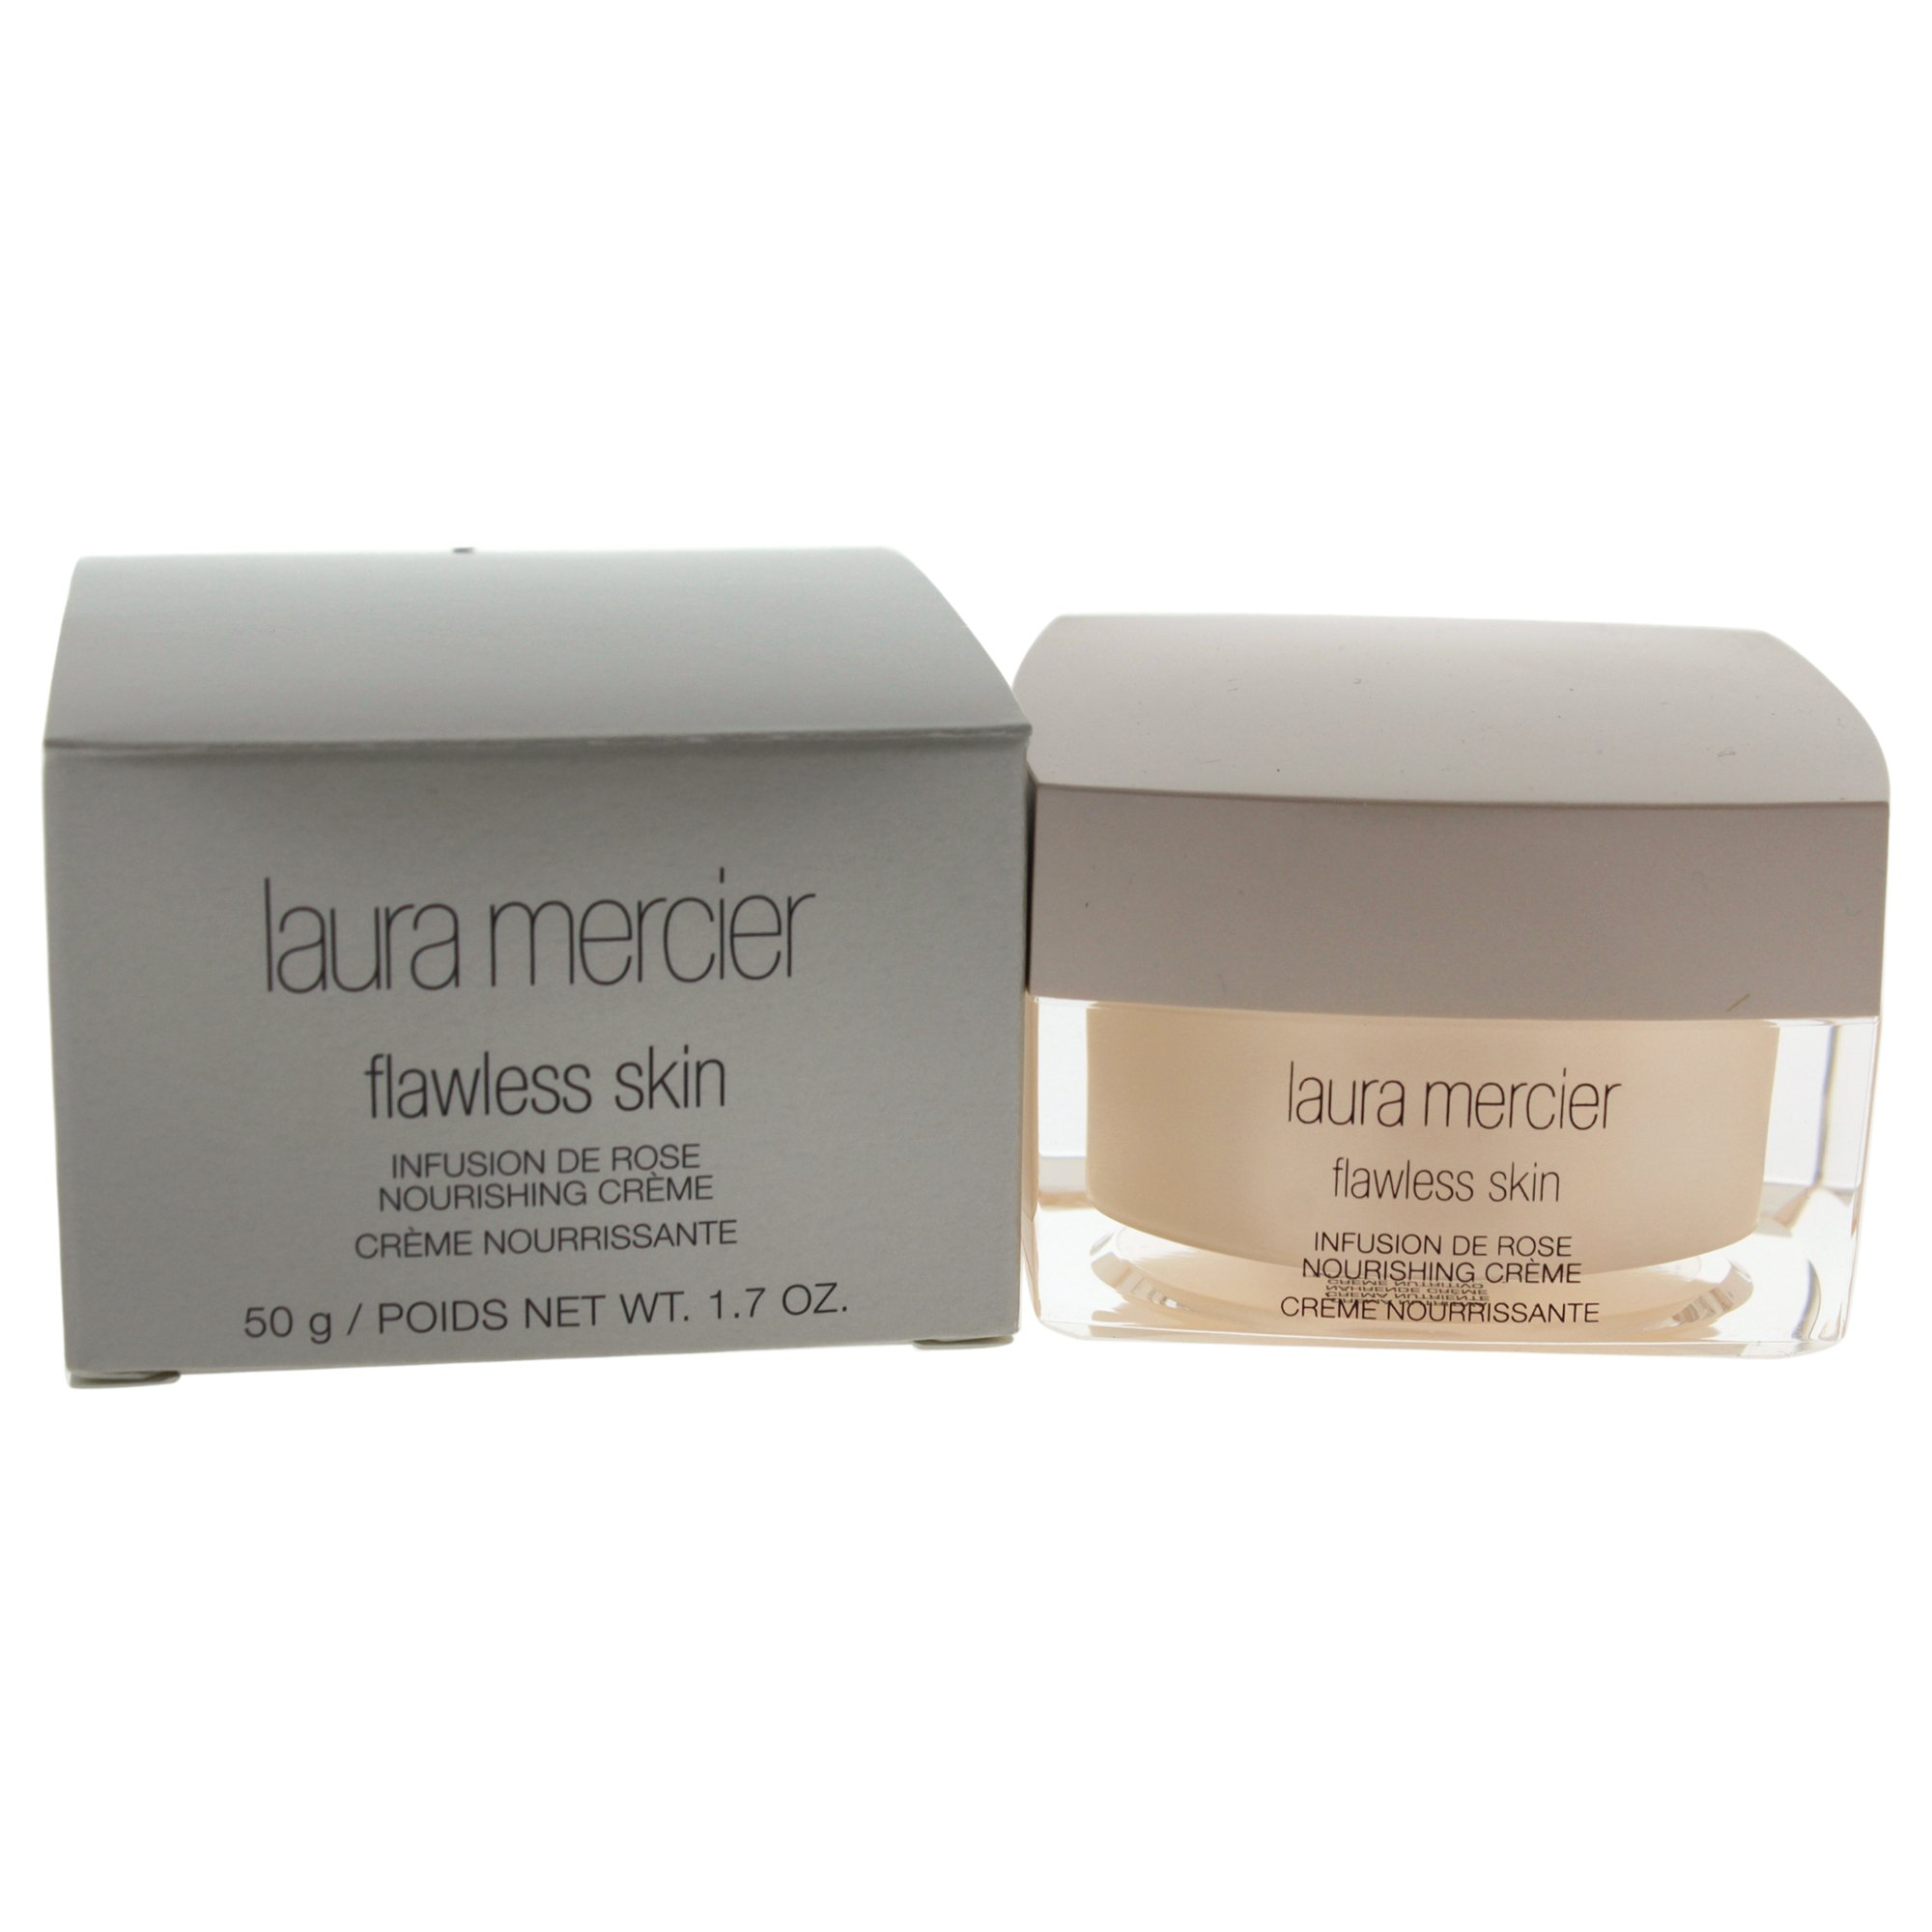 Laura Mercier Flawless Skin Infusion De Rose Nourishing Creme 1.7oz (50ml) Immortelle Precious Cream Loccitane 1.7 oz Cream Unisex